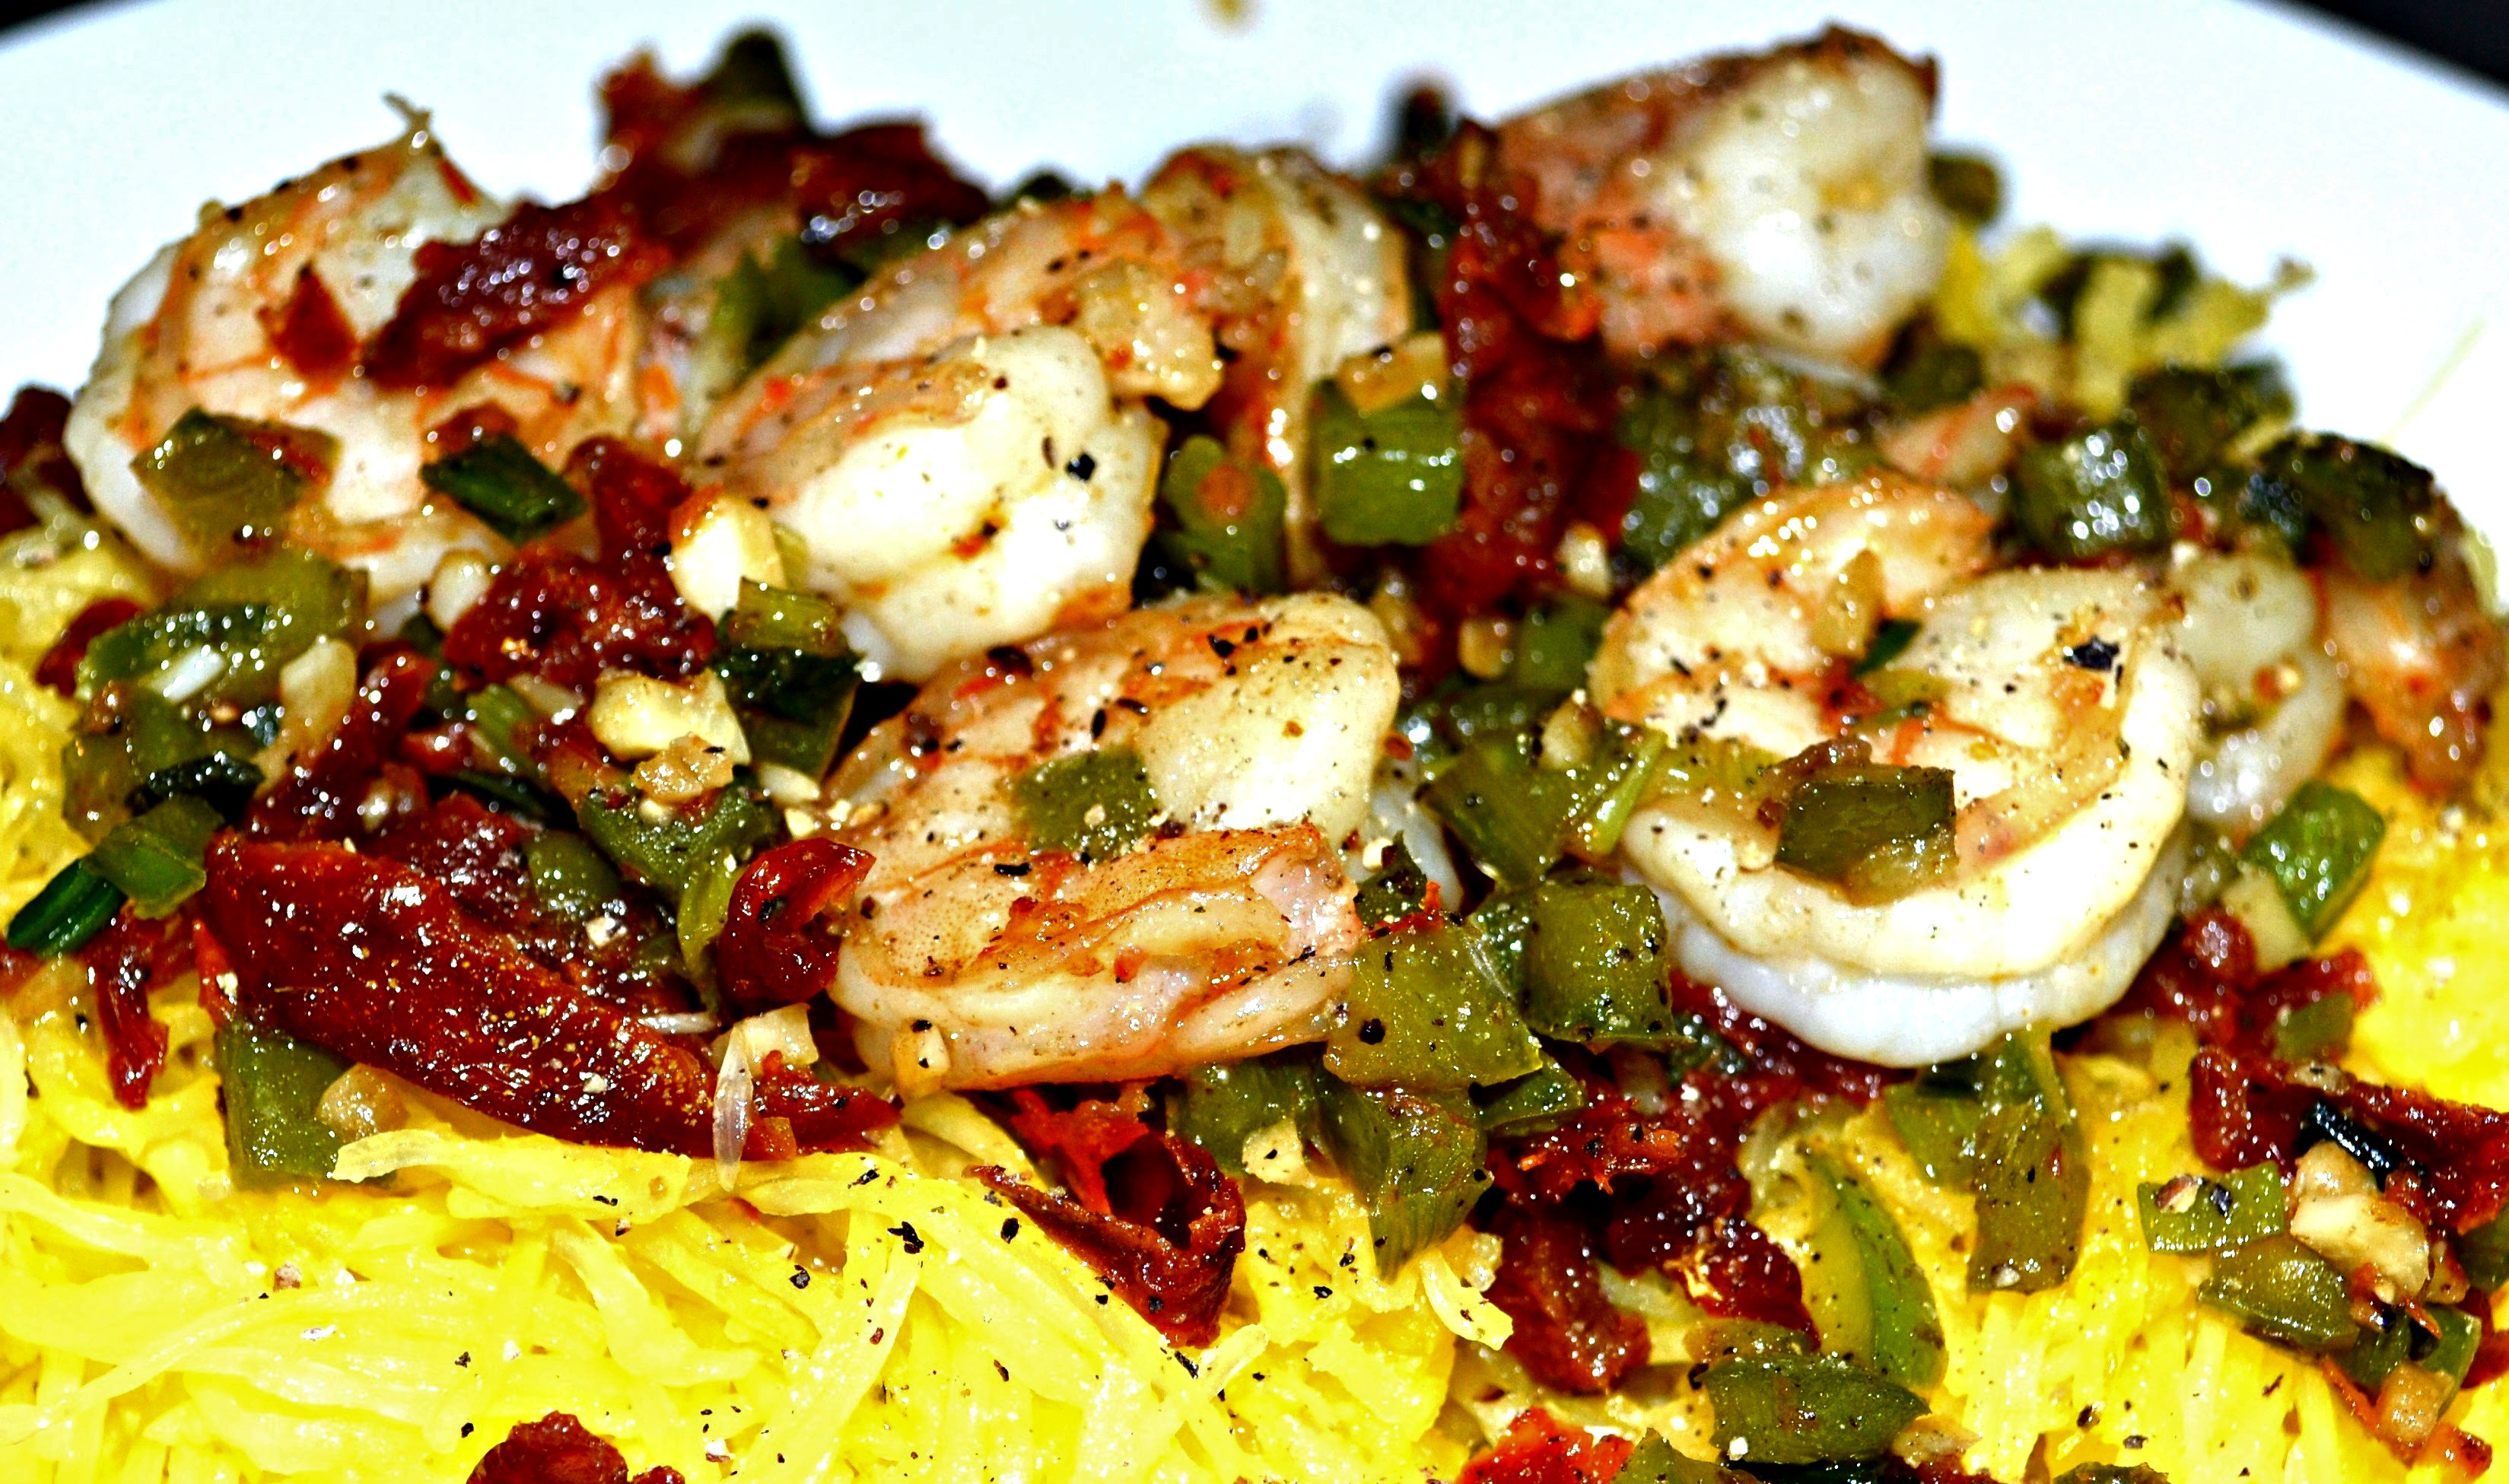 ... -Dried Tomatoes, Green Peppers and Spaghetti Squash - A Hint of Wine